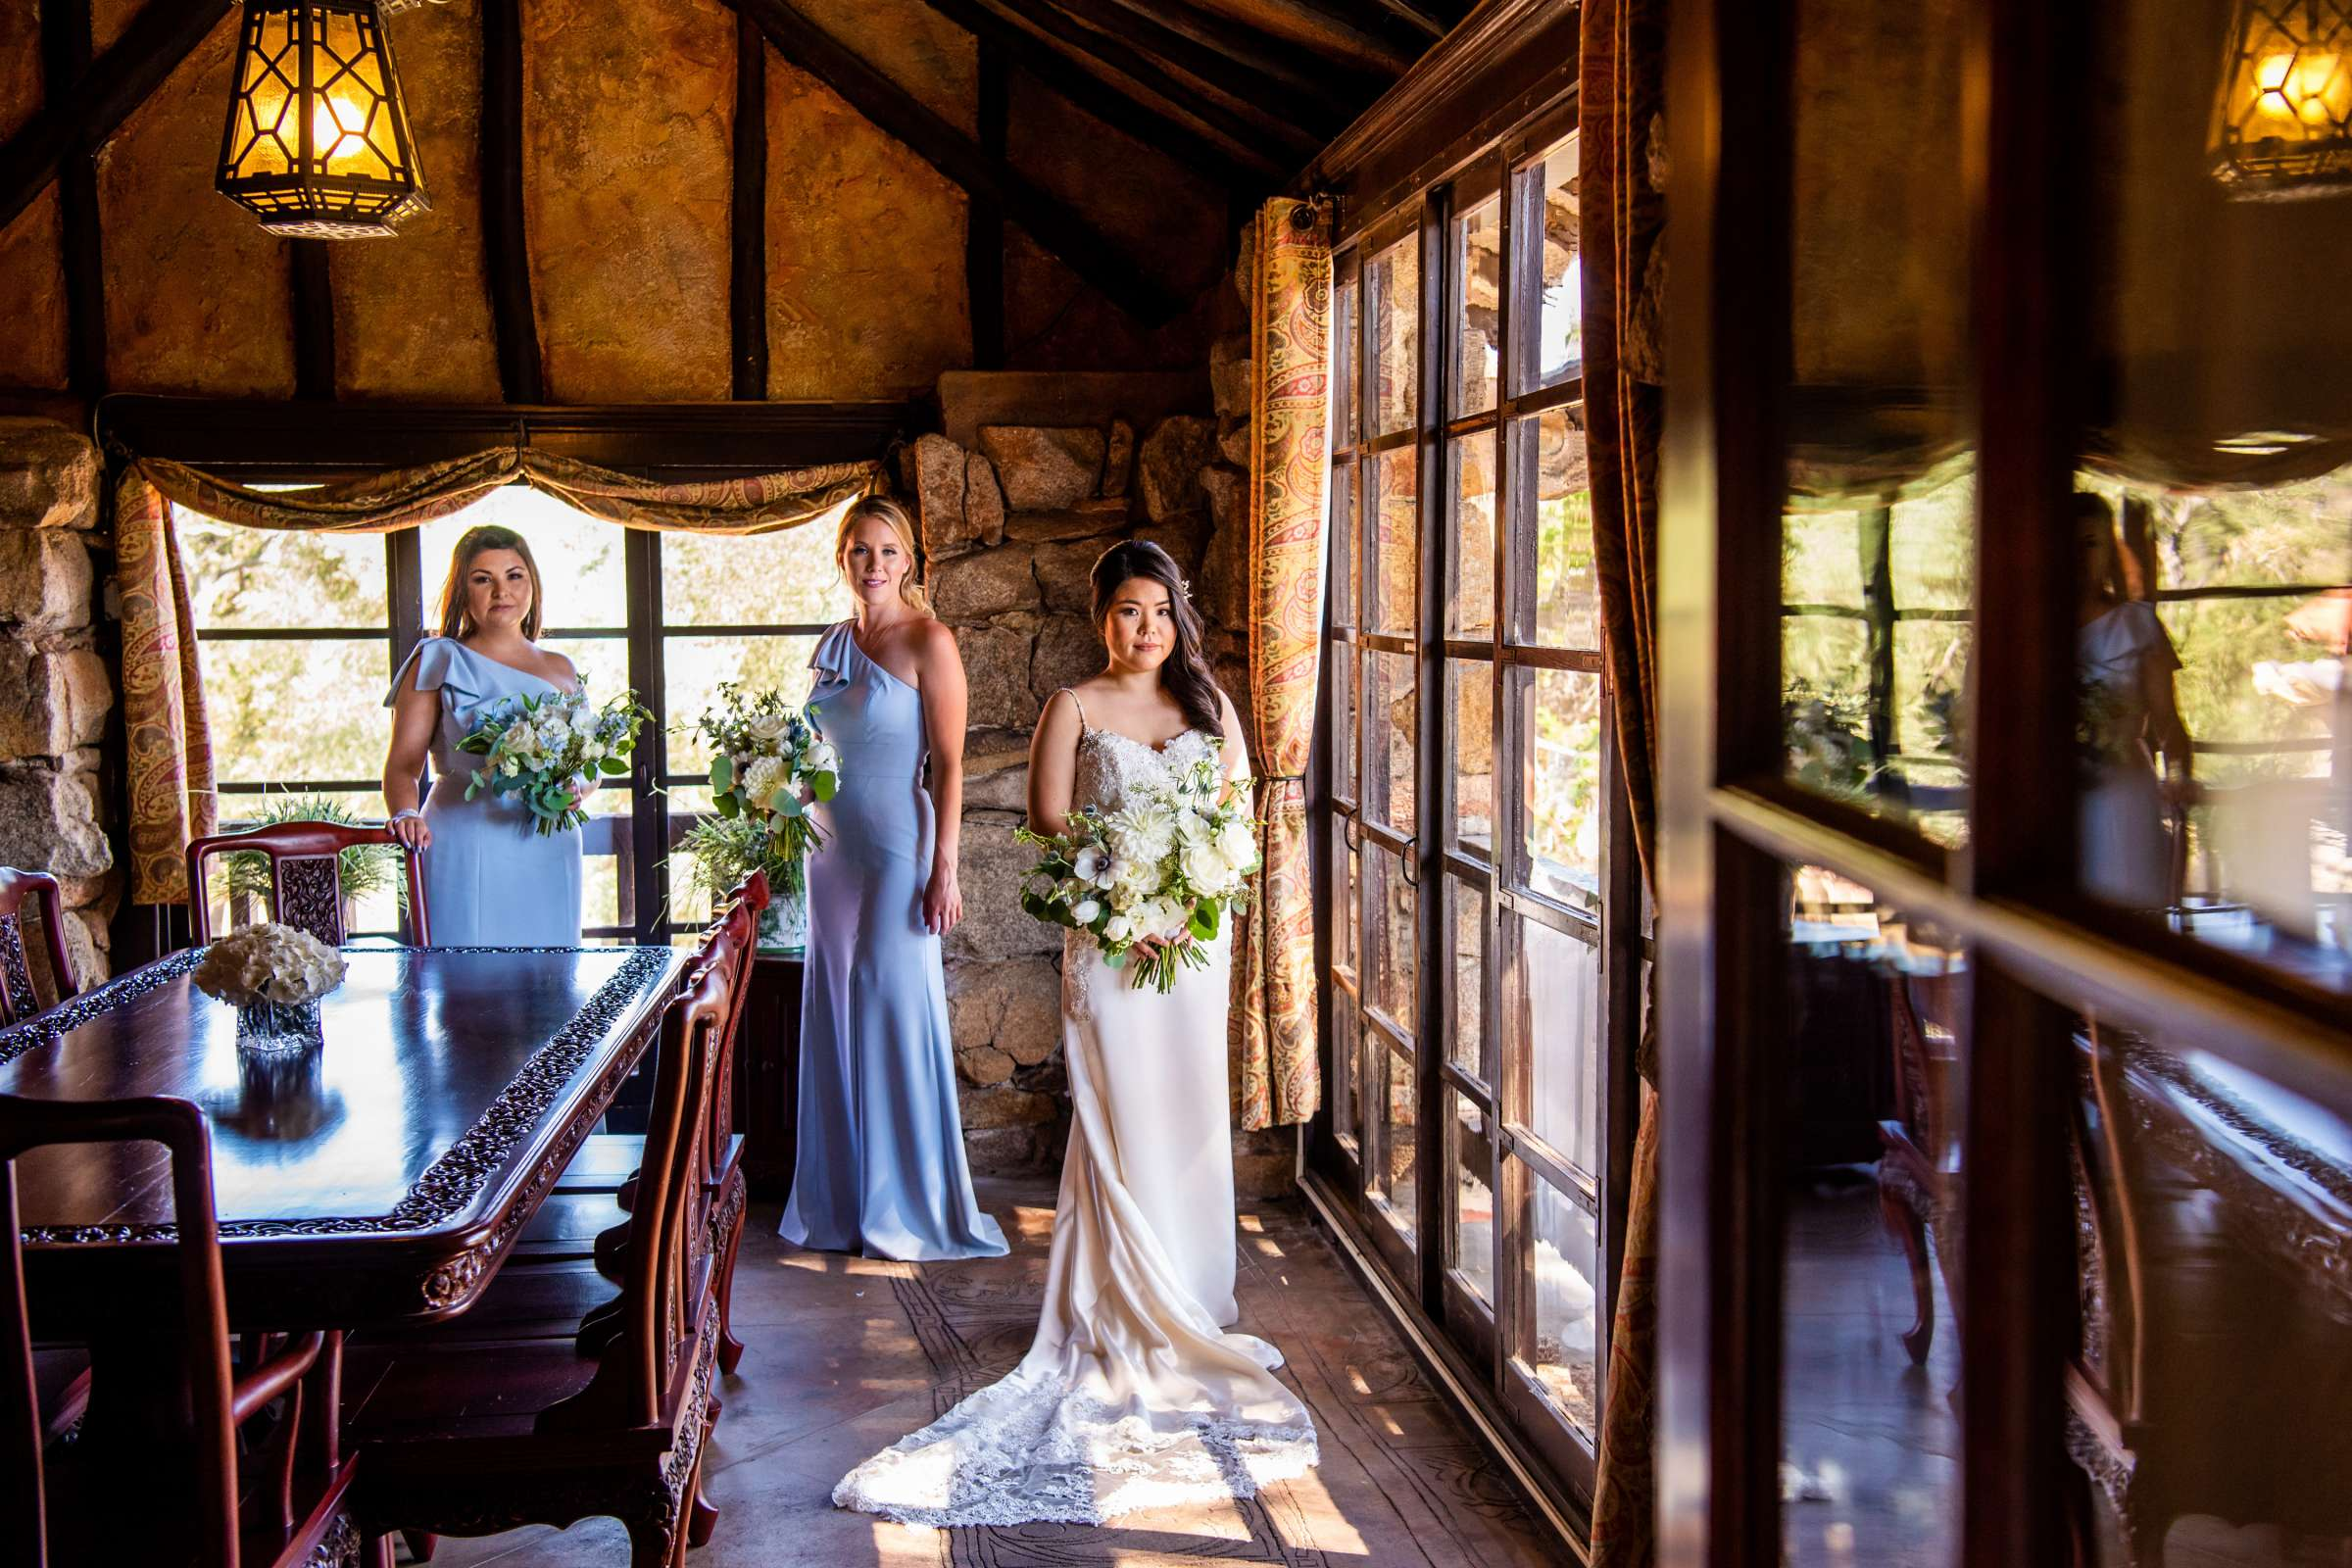 Mt Woodson Castle Wedding coordinated by I Do Weddings, Aya and Jared Wedding Photo #486868 by True Photography